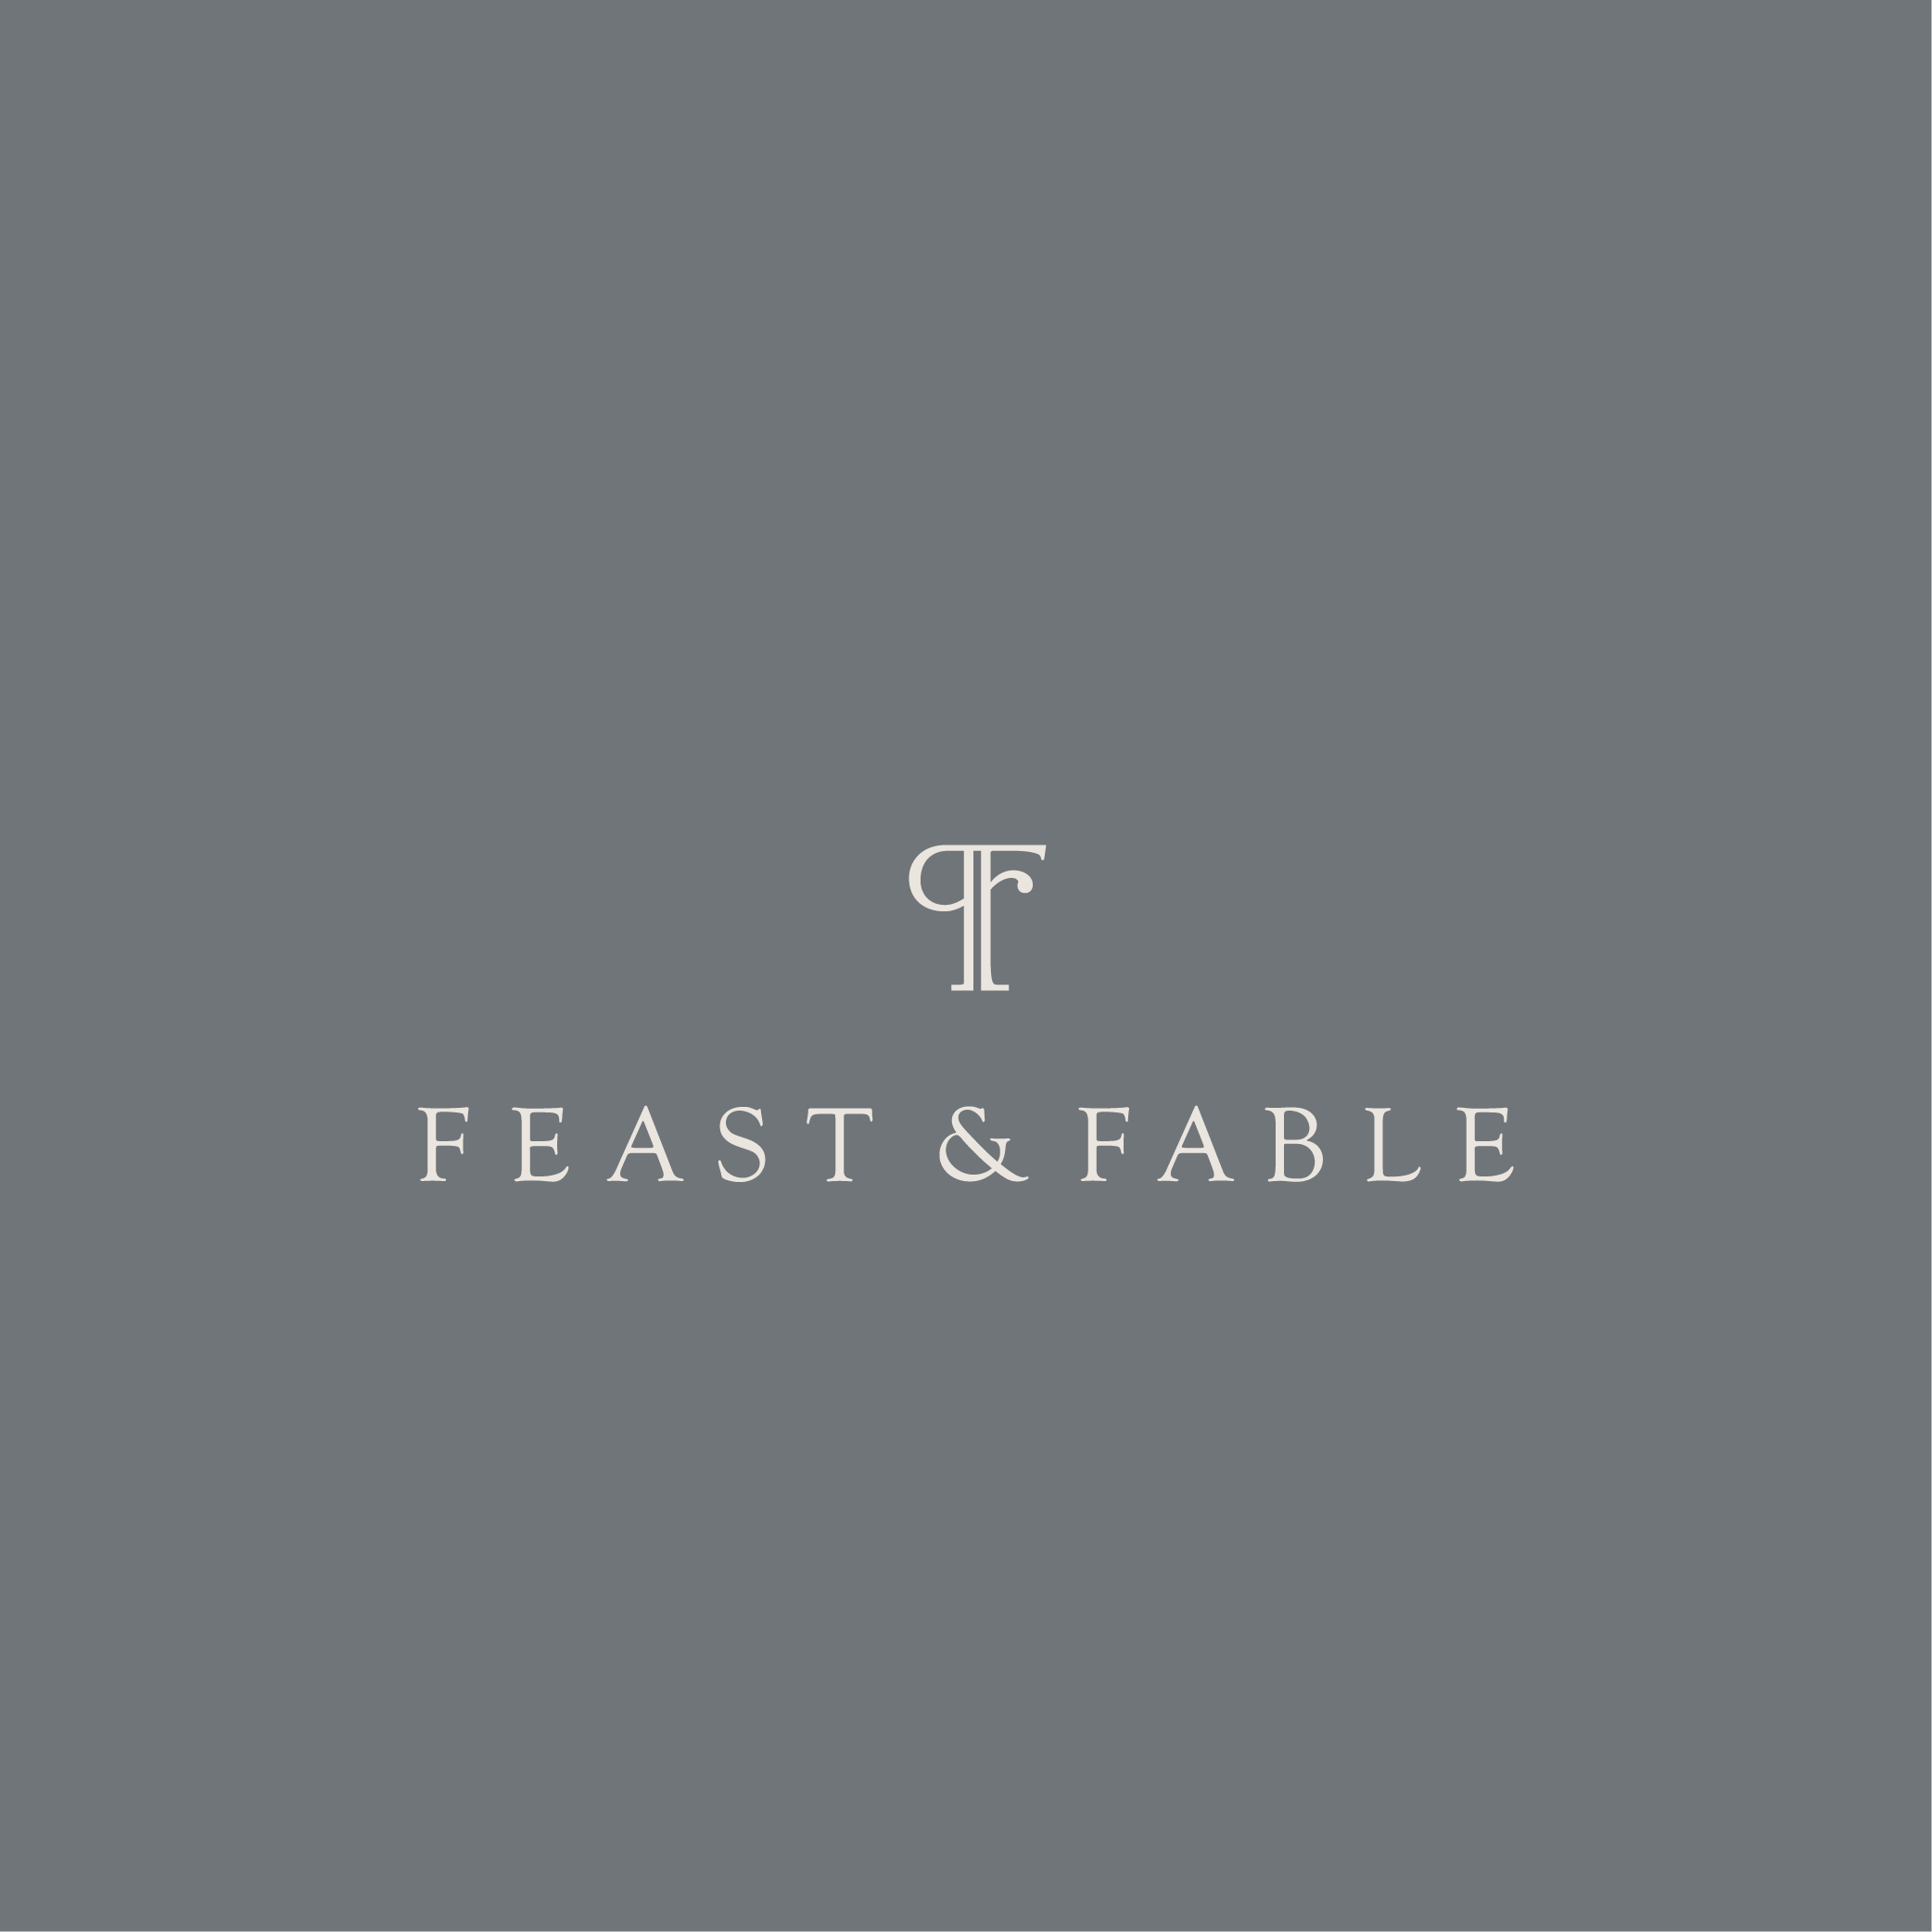 Feast&Fable_Social-01.png